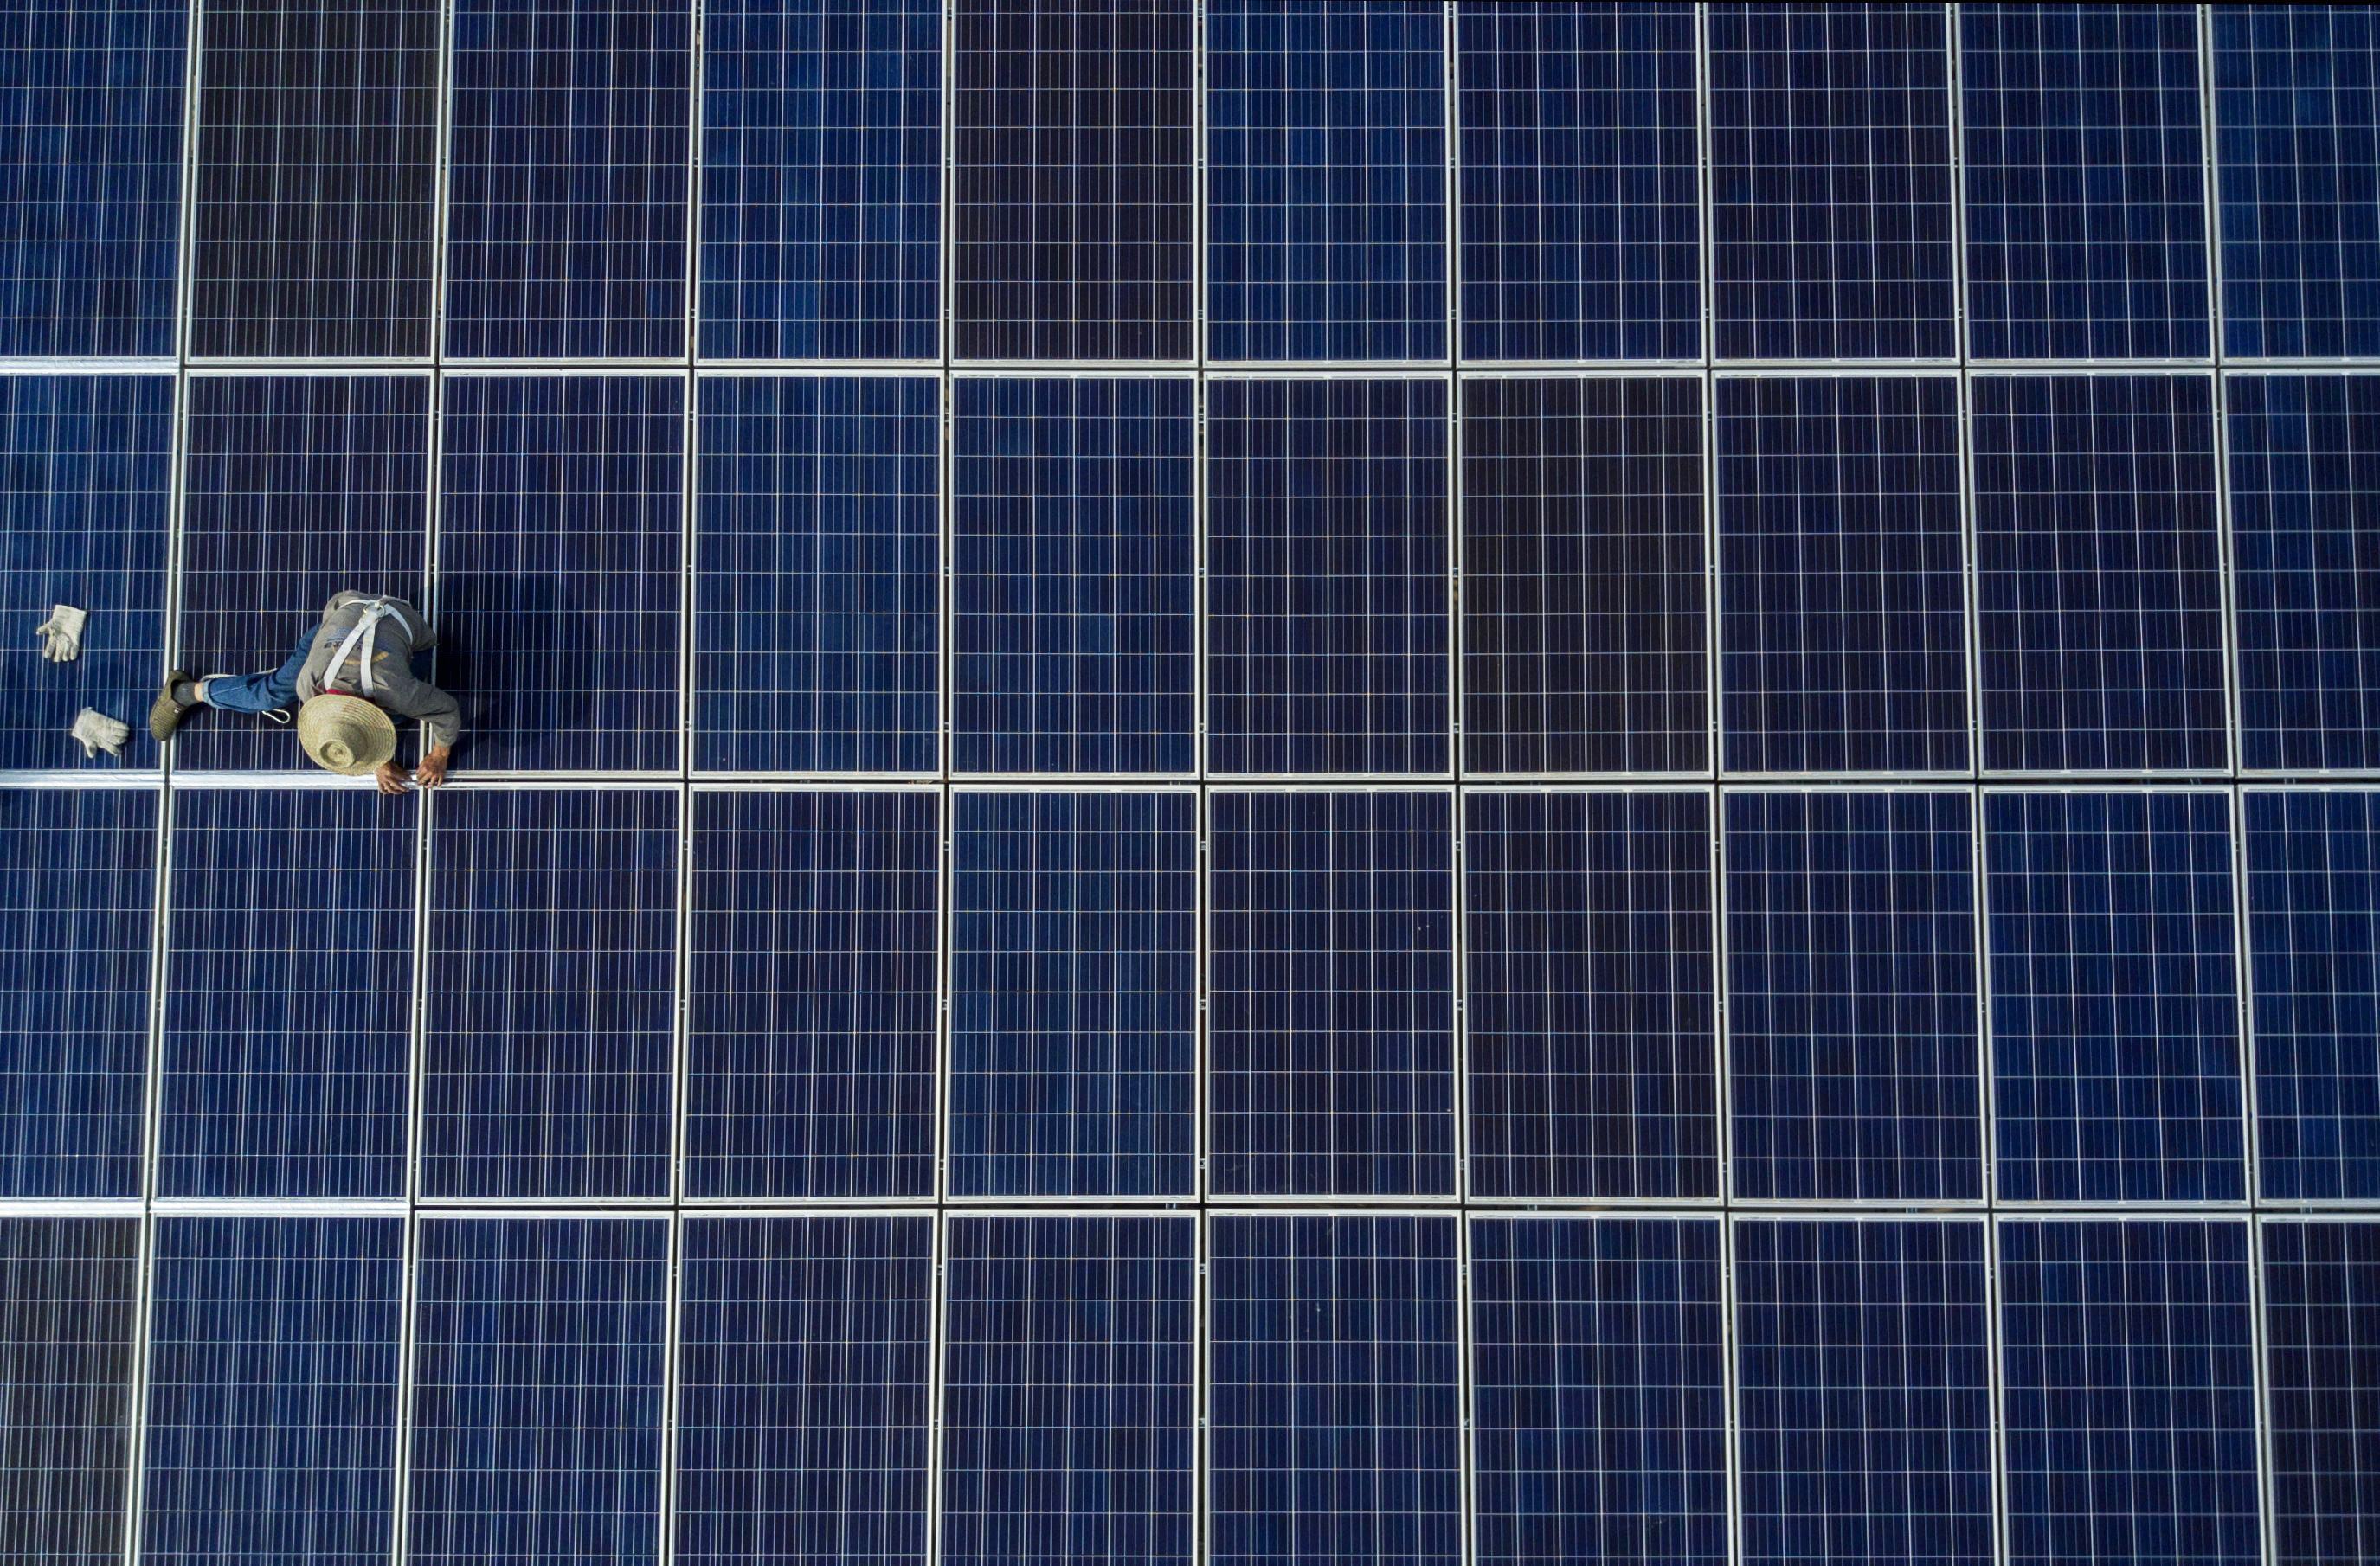 fortune.com - Eamon Barrett - The pandemic won't derail the green energy transition